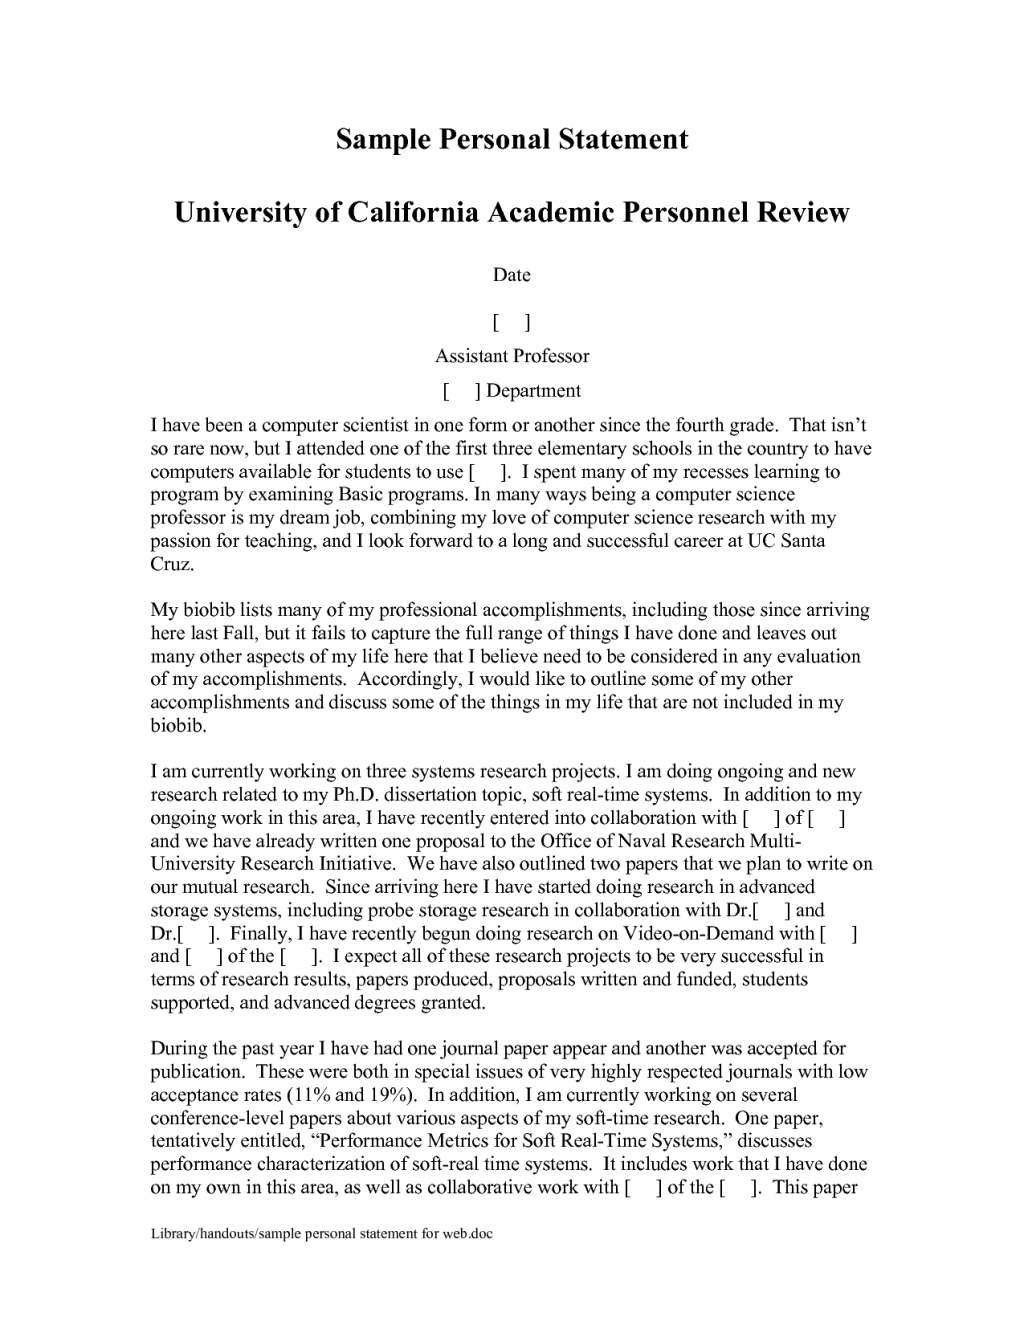 014 Essay Example Harvard Business School Examples Image Ideas Template Sample Essays Mba Entrance Writing Unit Graduate Personal Formidable Word Limit Question 2018 Full